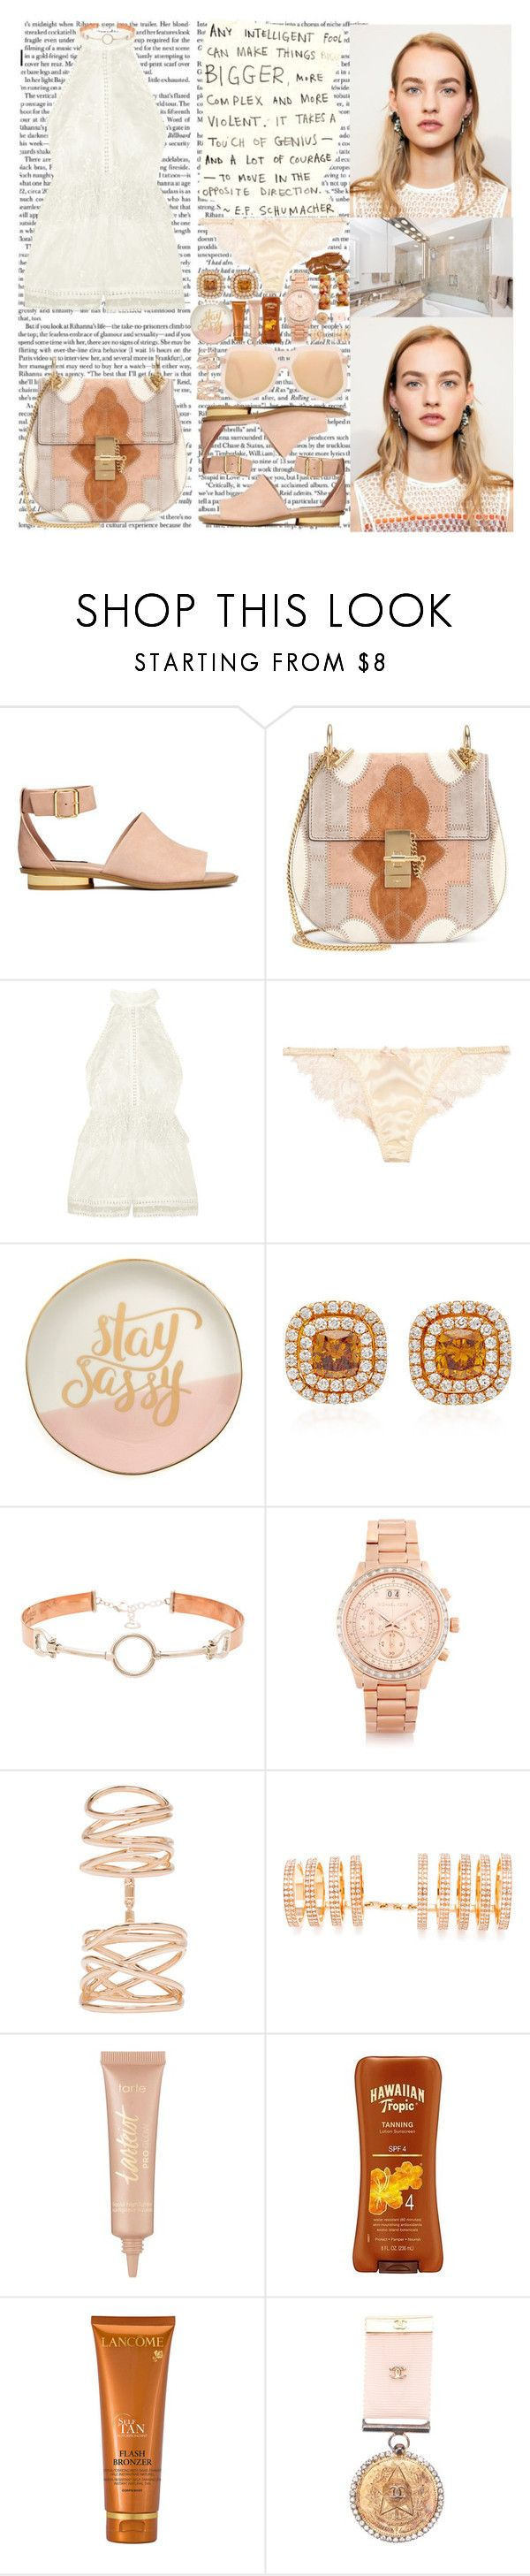 """I bought every V12 engine Wish I could take it back to the beginnin' I coulda bought a place in Dumbo before it was Dumbo For like 2 million That same building today is worth 25 million Guess how I'm feelin'? Dumbo"" by labelsoflove ❤ liked on Polyvore featuring H&M, Chloé, Zimmermann, Agent Provocateur, Slant, Martin Katz, Cast of Vices, Michael Kors, Repossi and tarte"